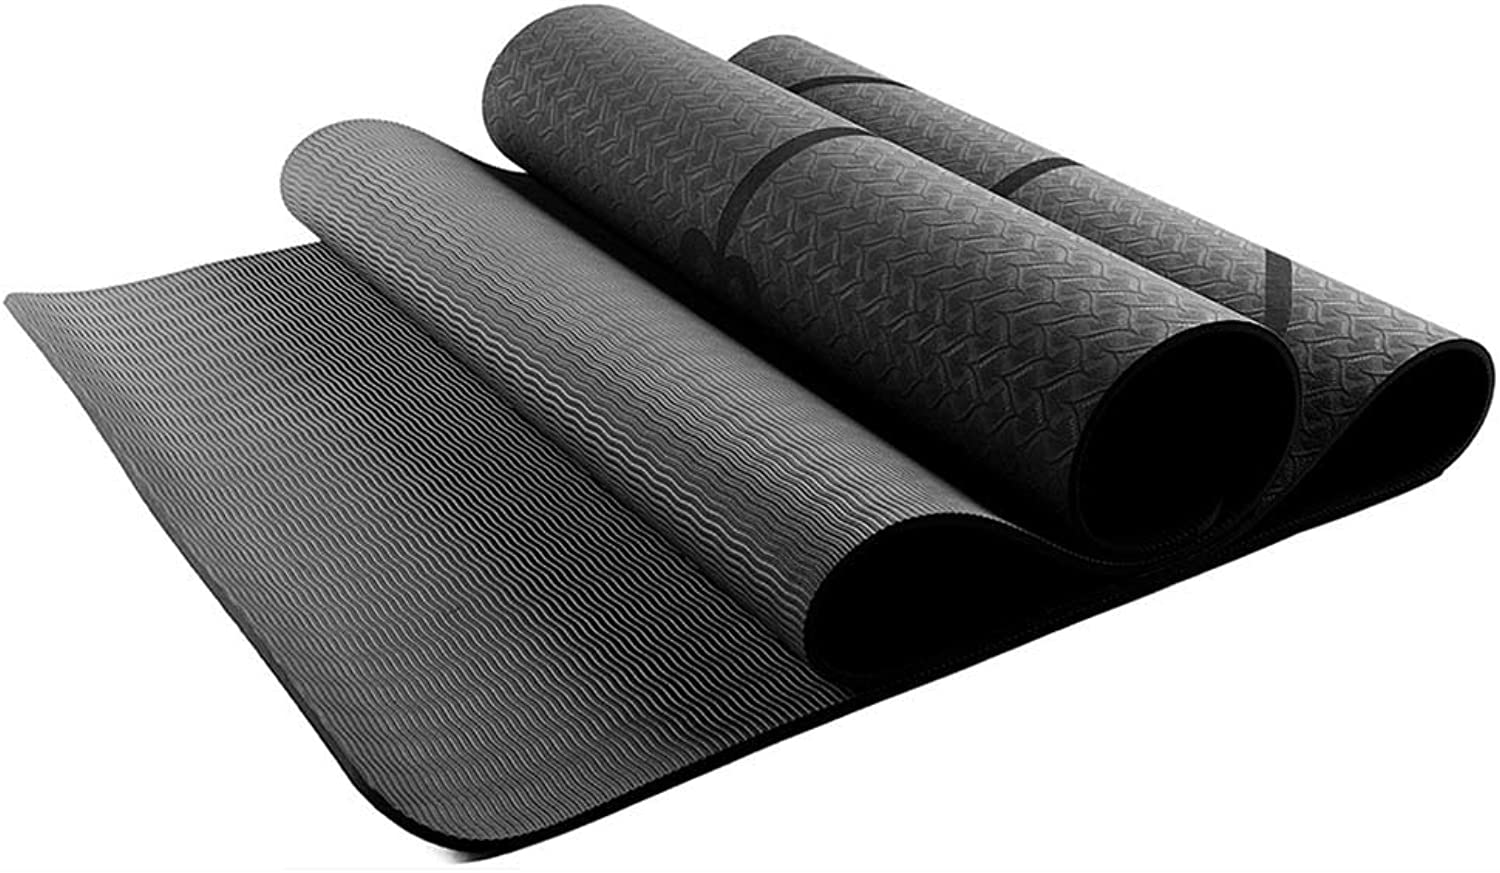 GreenValley113  TPE Yoga Mat 1830x610x6mm with Position Line Non Slip Carpet Mat for Beginner Environmental Fitness Gymnastics Yoga Mats